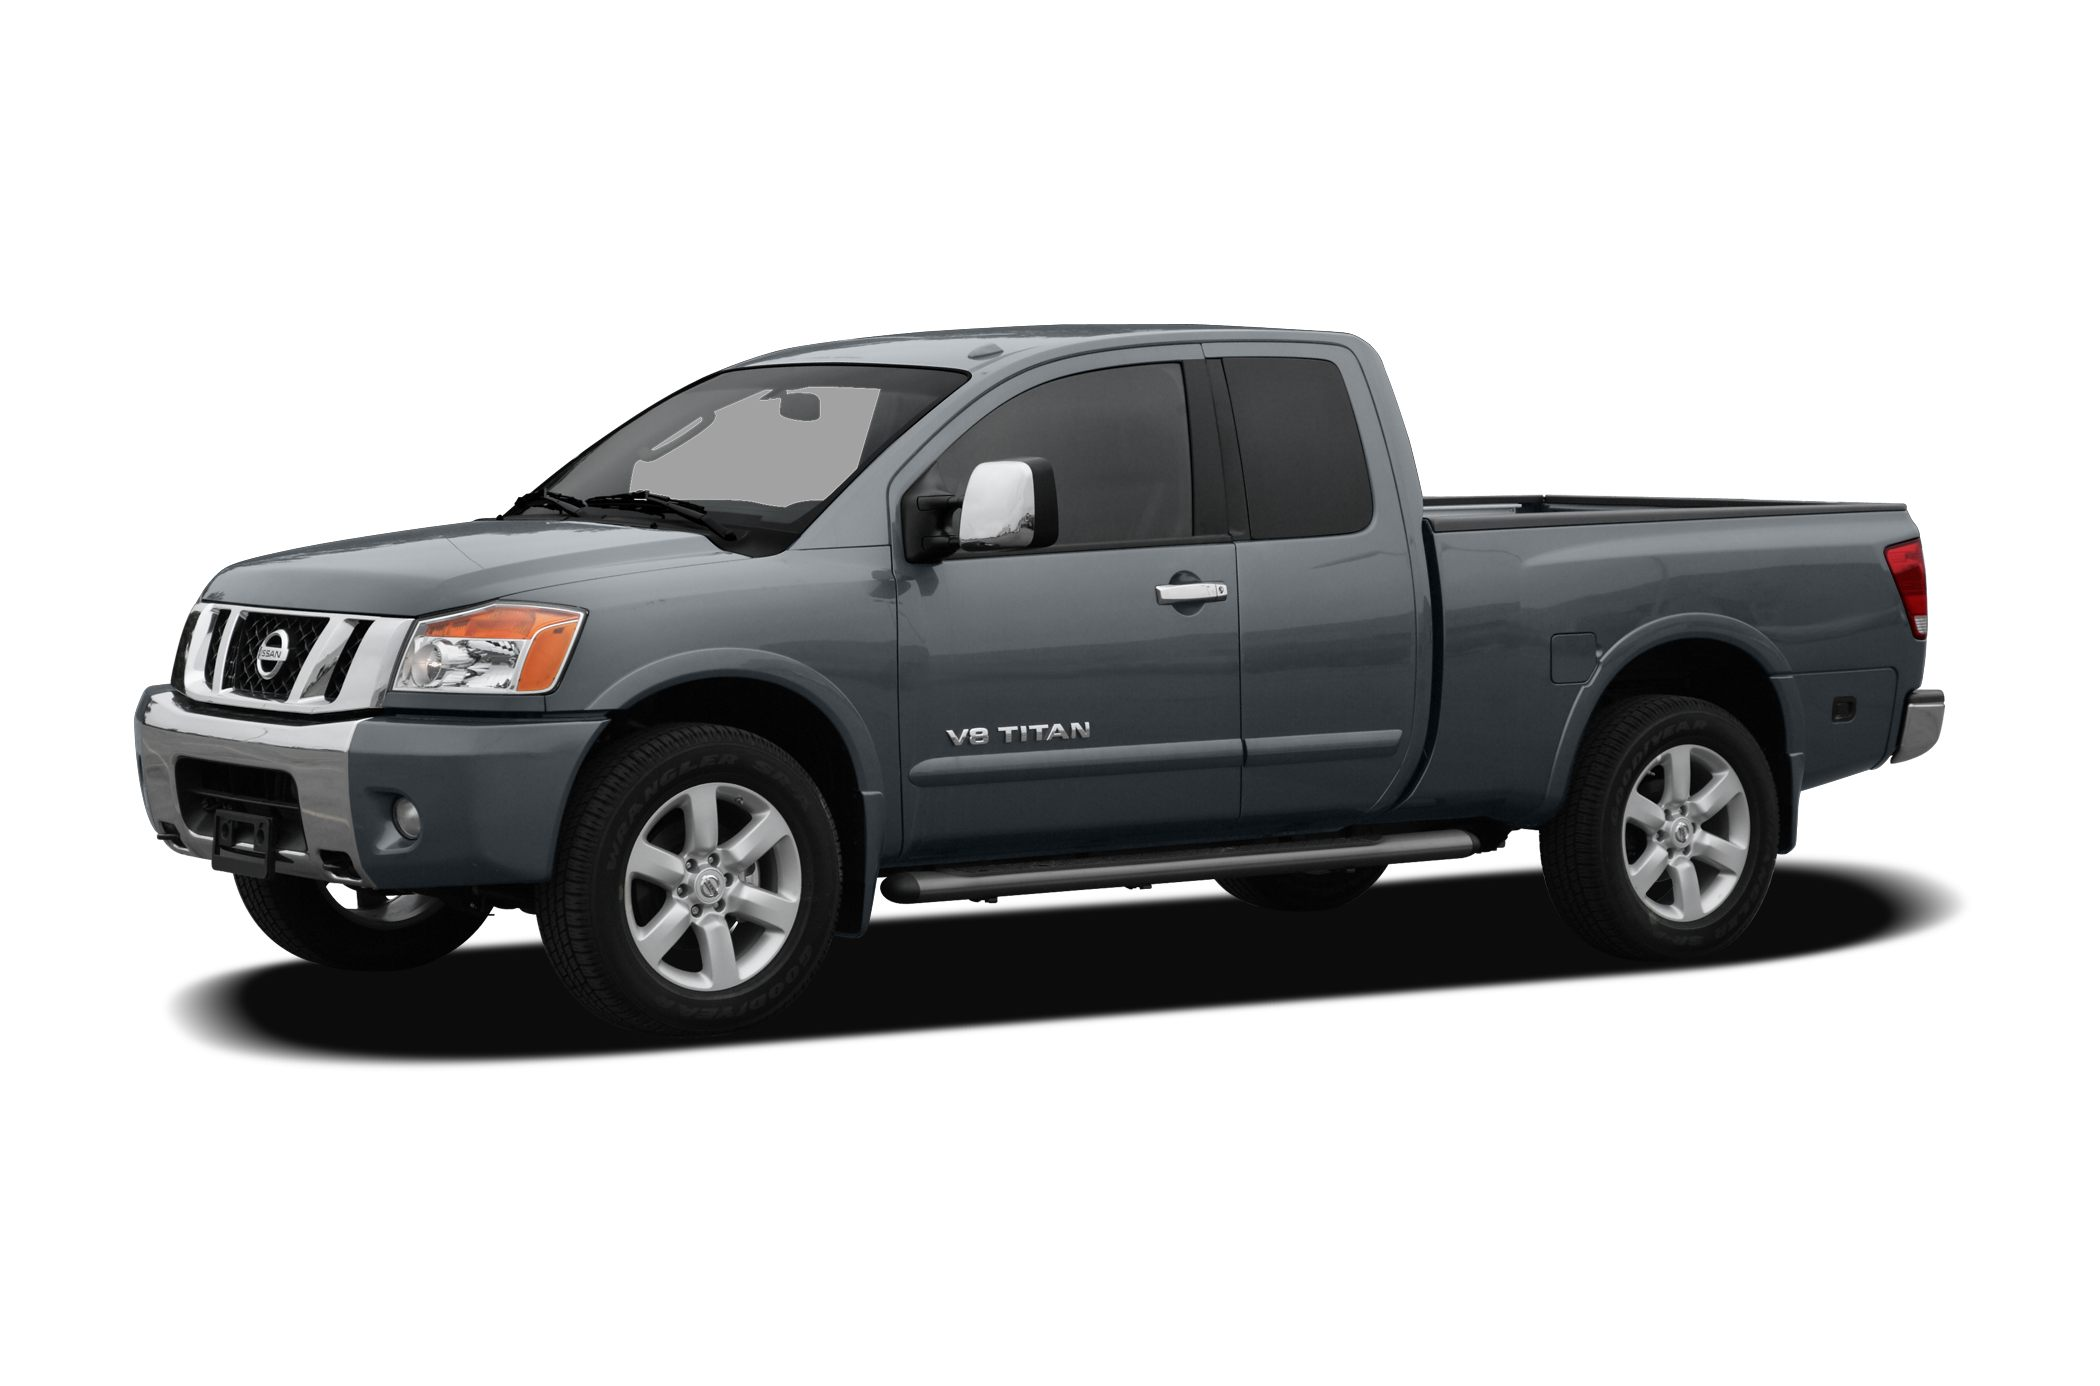 2008 5 nissan titan le 4x2 king cab swb information. Black Bedroom Furniture Sets. Home Design Ideas